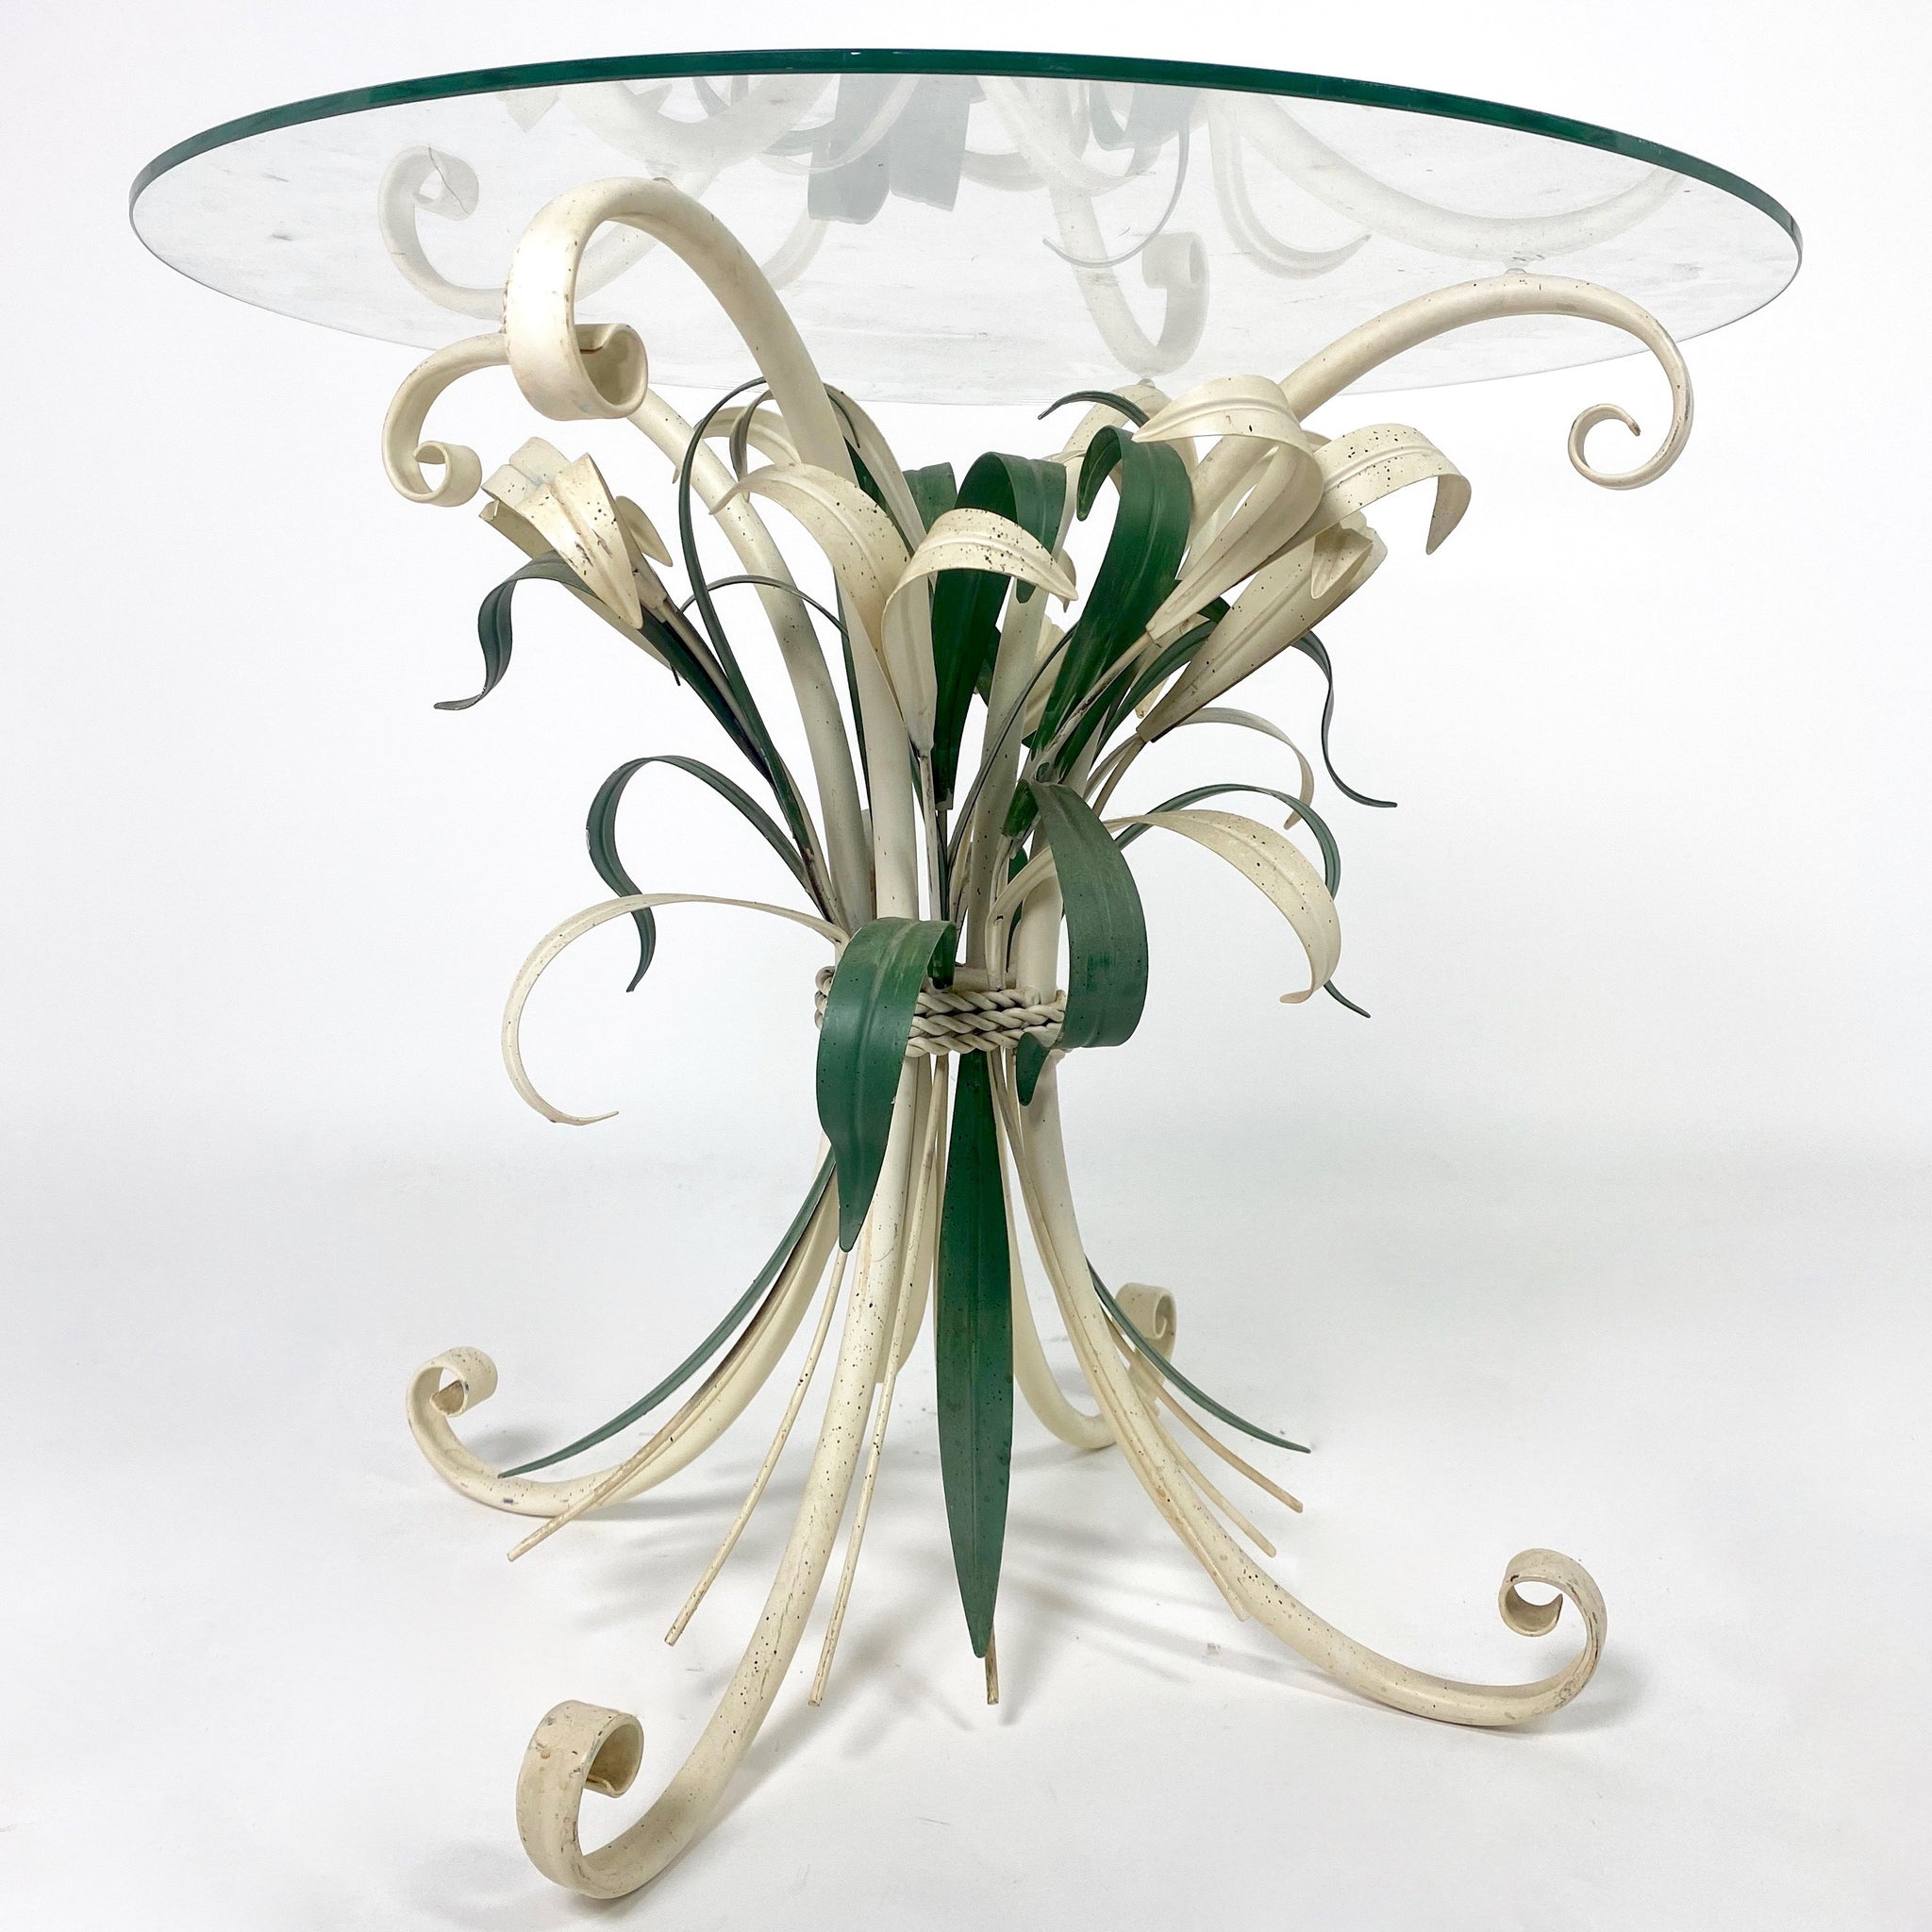 Decorative Italian tole side table with Lilly flower details .